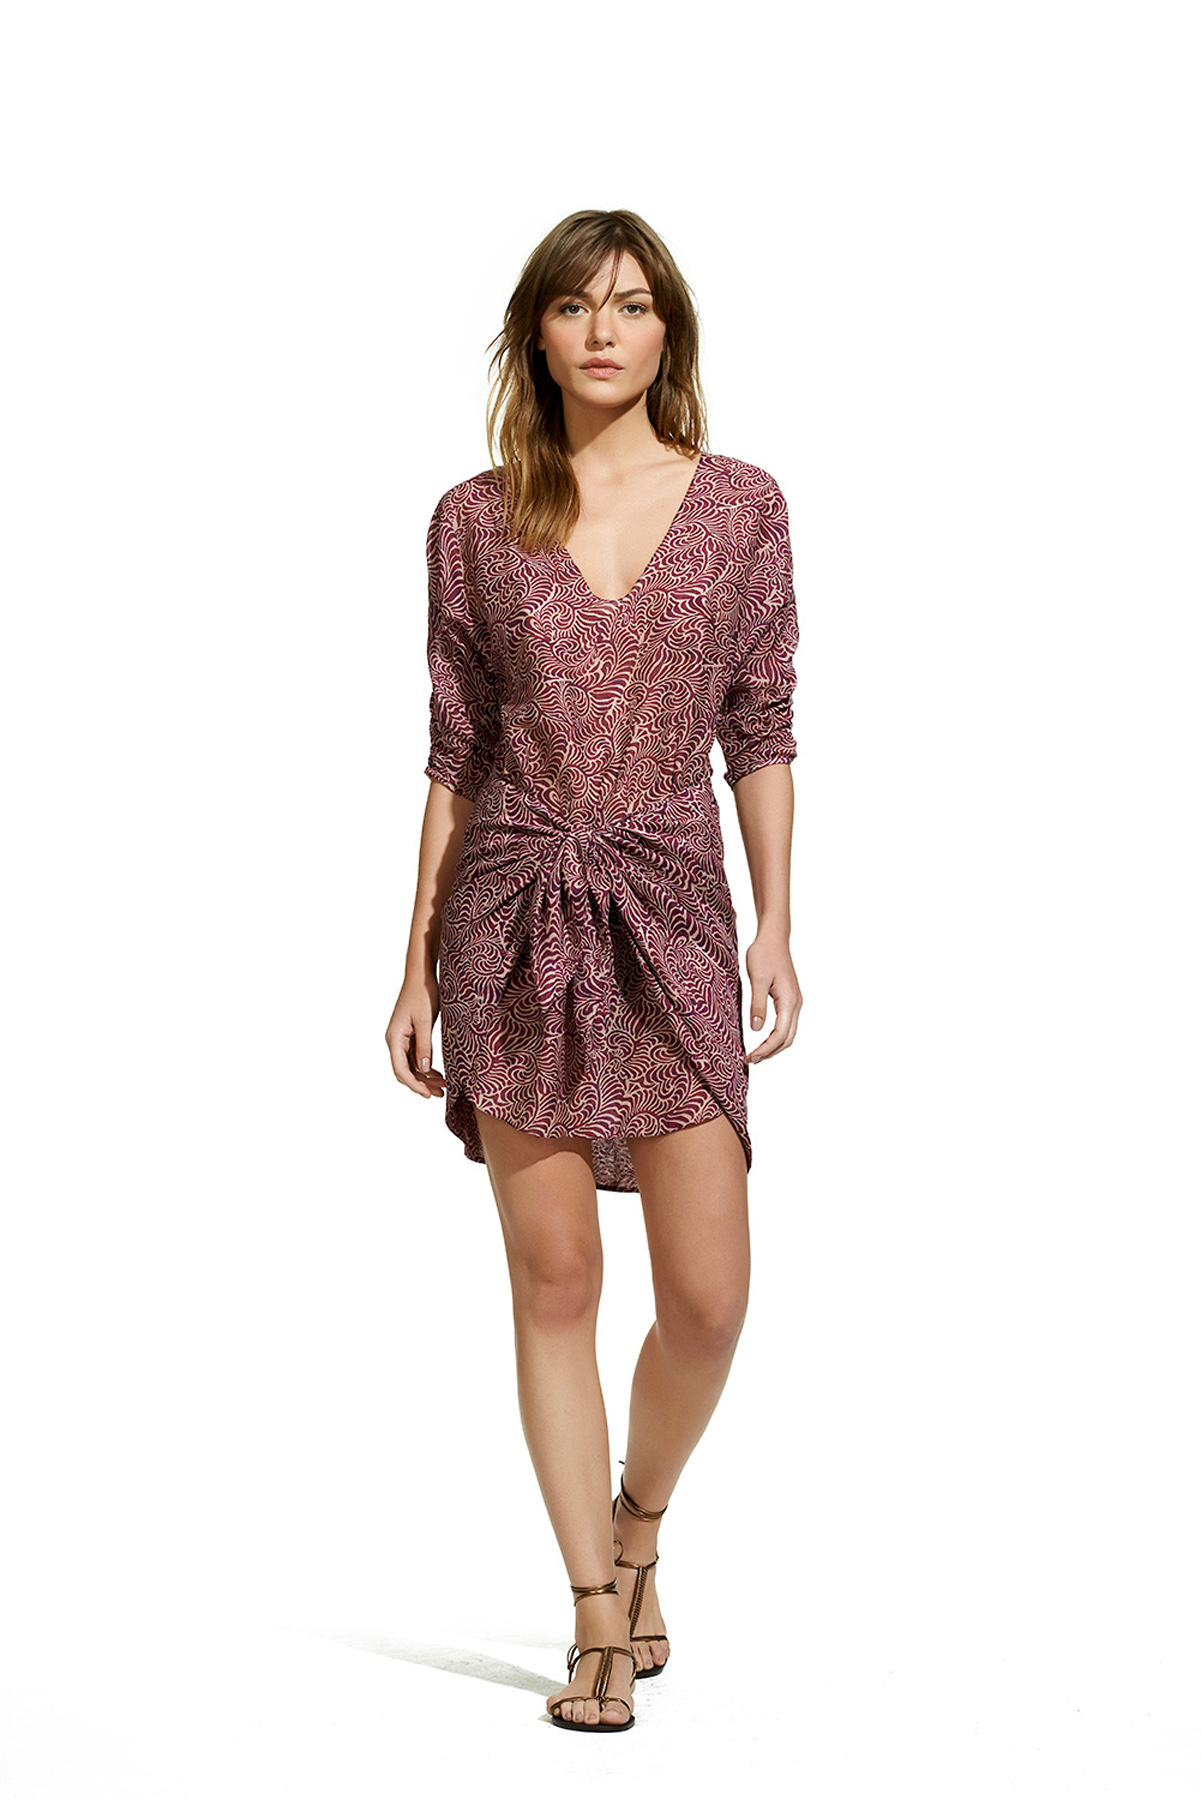 7-cashmere-nicole-short-dress-vs172005-027-copiar